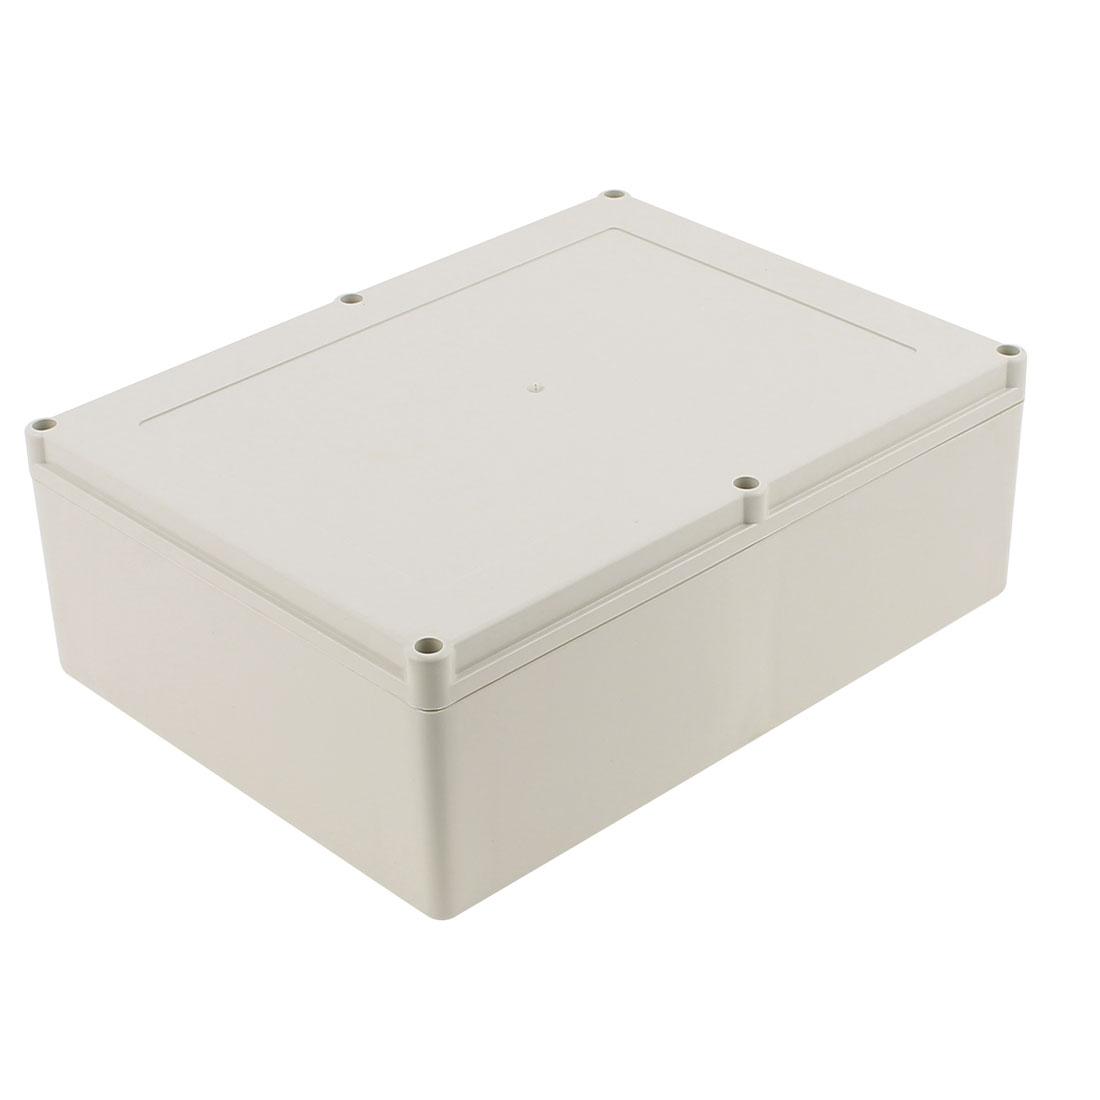 270mmx200mmx92mm Dustproof IP65 Junction Box Terminal Connecting Box Enclosure